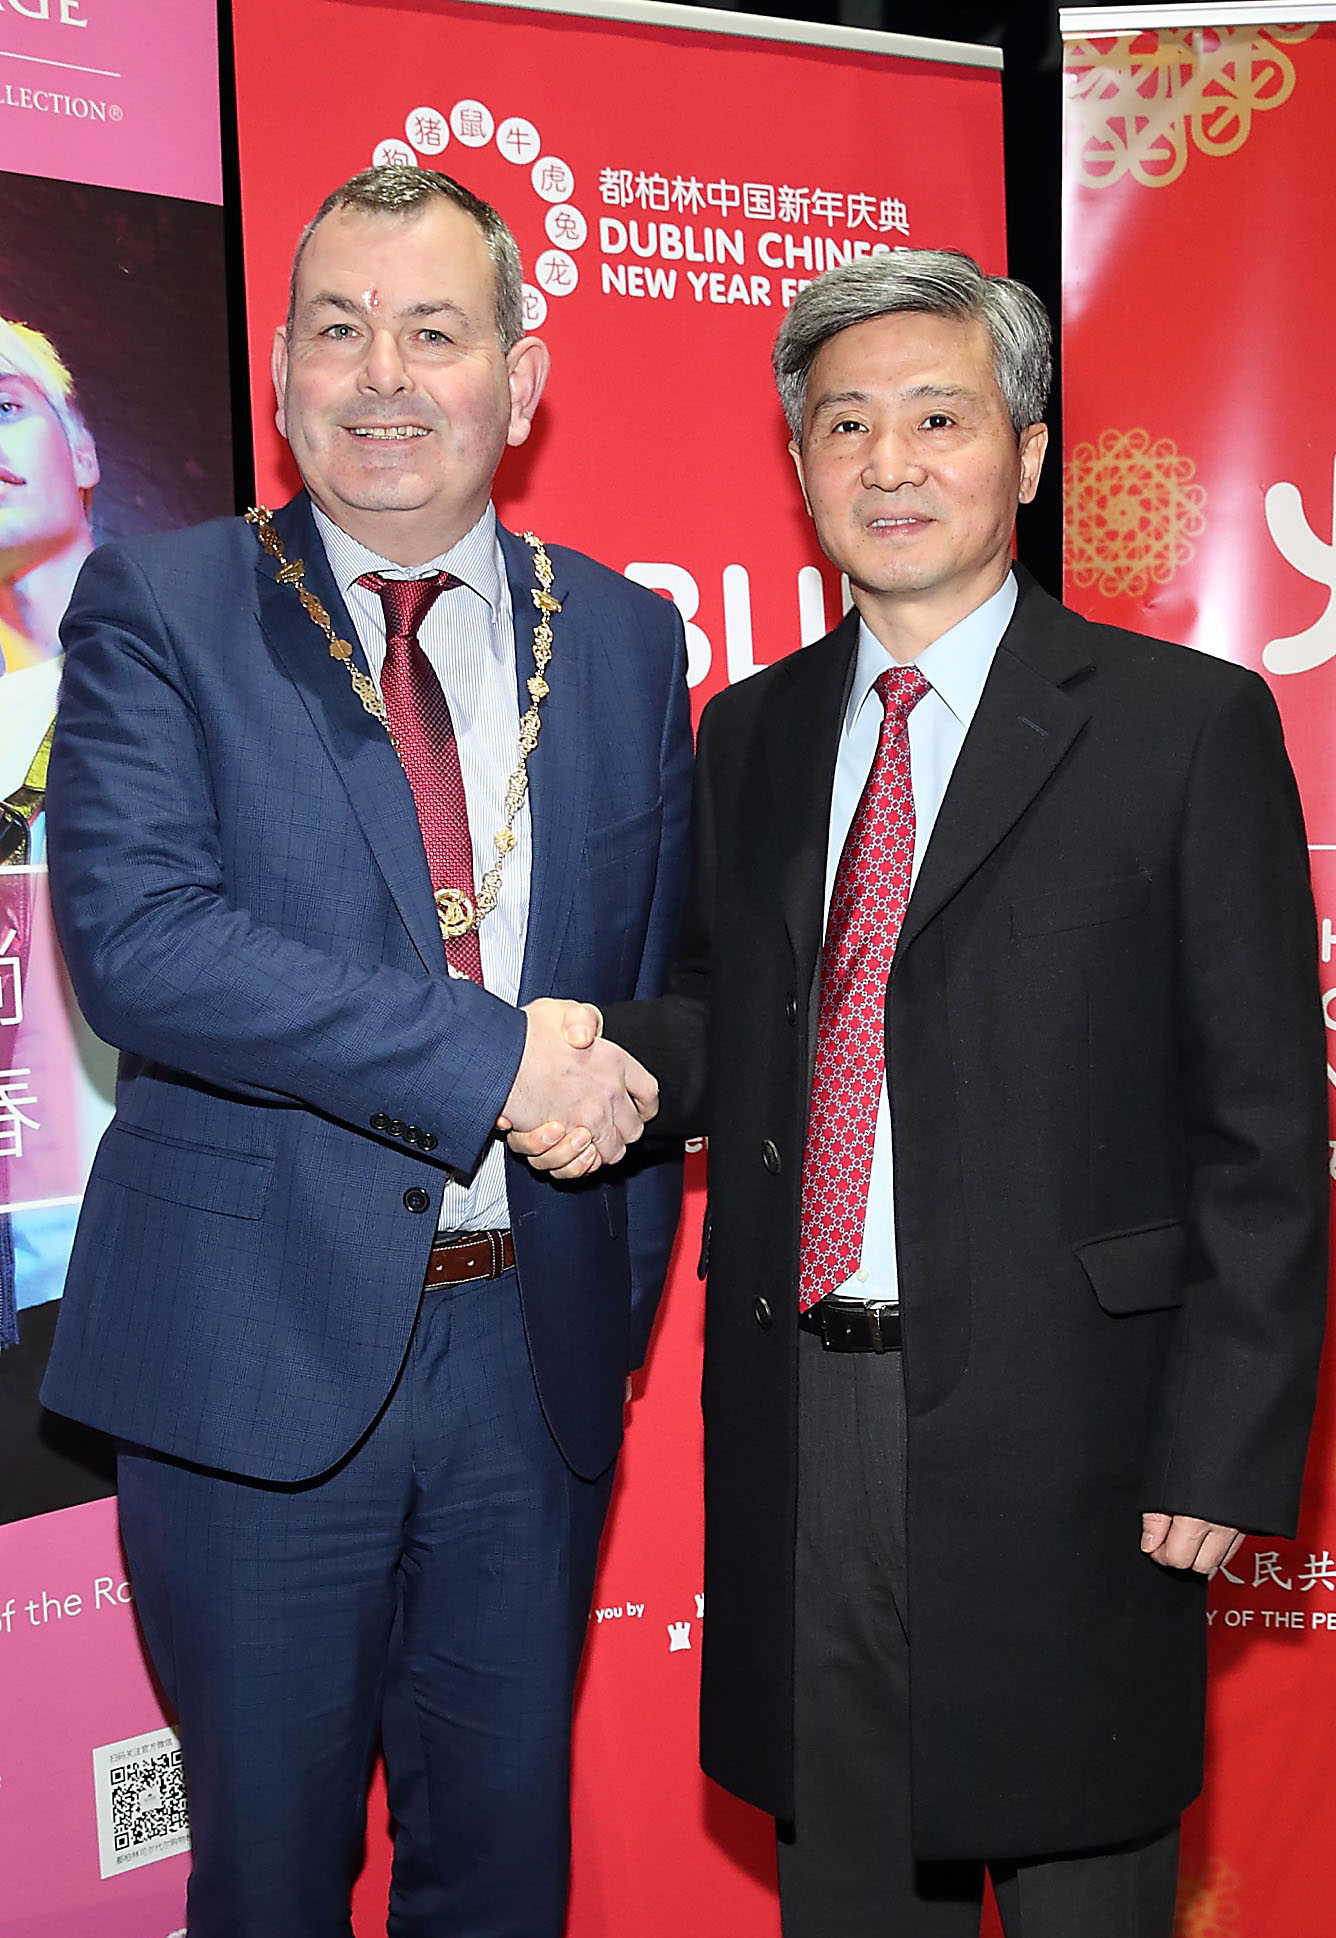 Deputy Lord Mayor of Dublin Tom Brabazon and the Ambassador of the People's Republic of China in Ireland He Xiangdong  at the opening ceremony of Dublin Chinese New Year Festival 2020 which runs until 10th Feb and celebrates the Year of the Rat.  Pic: Brian McEvoy Photography